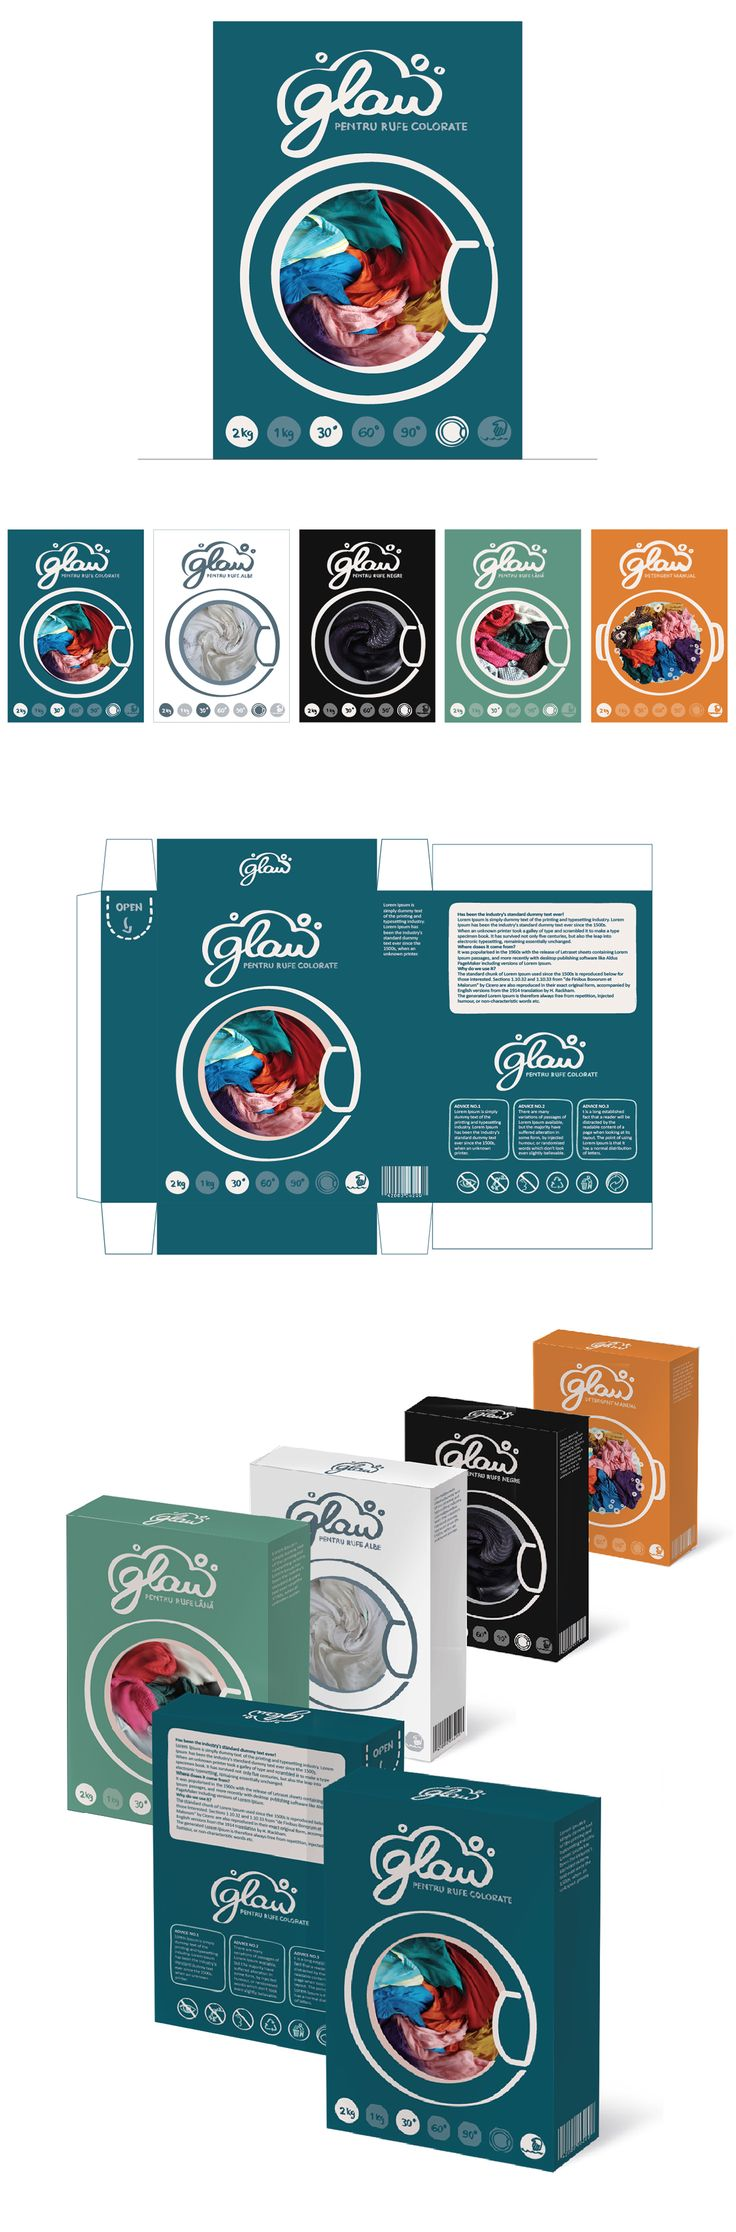 Glan Detergent - Logo and Package Design on Behance